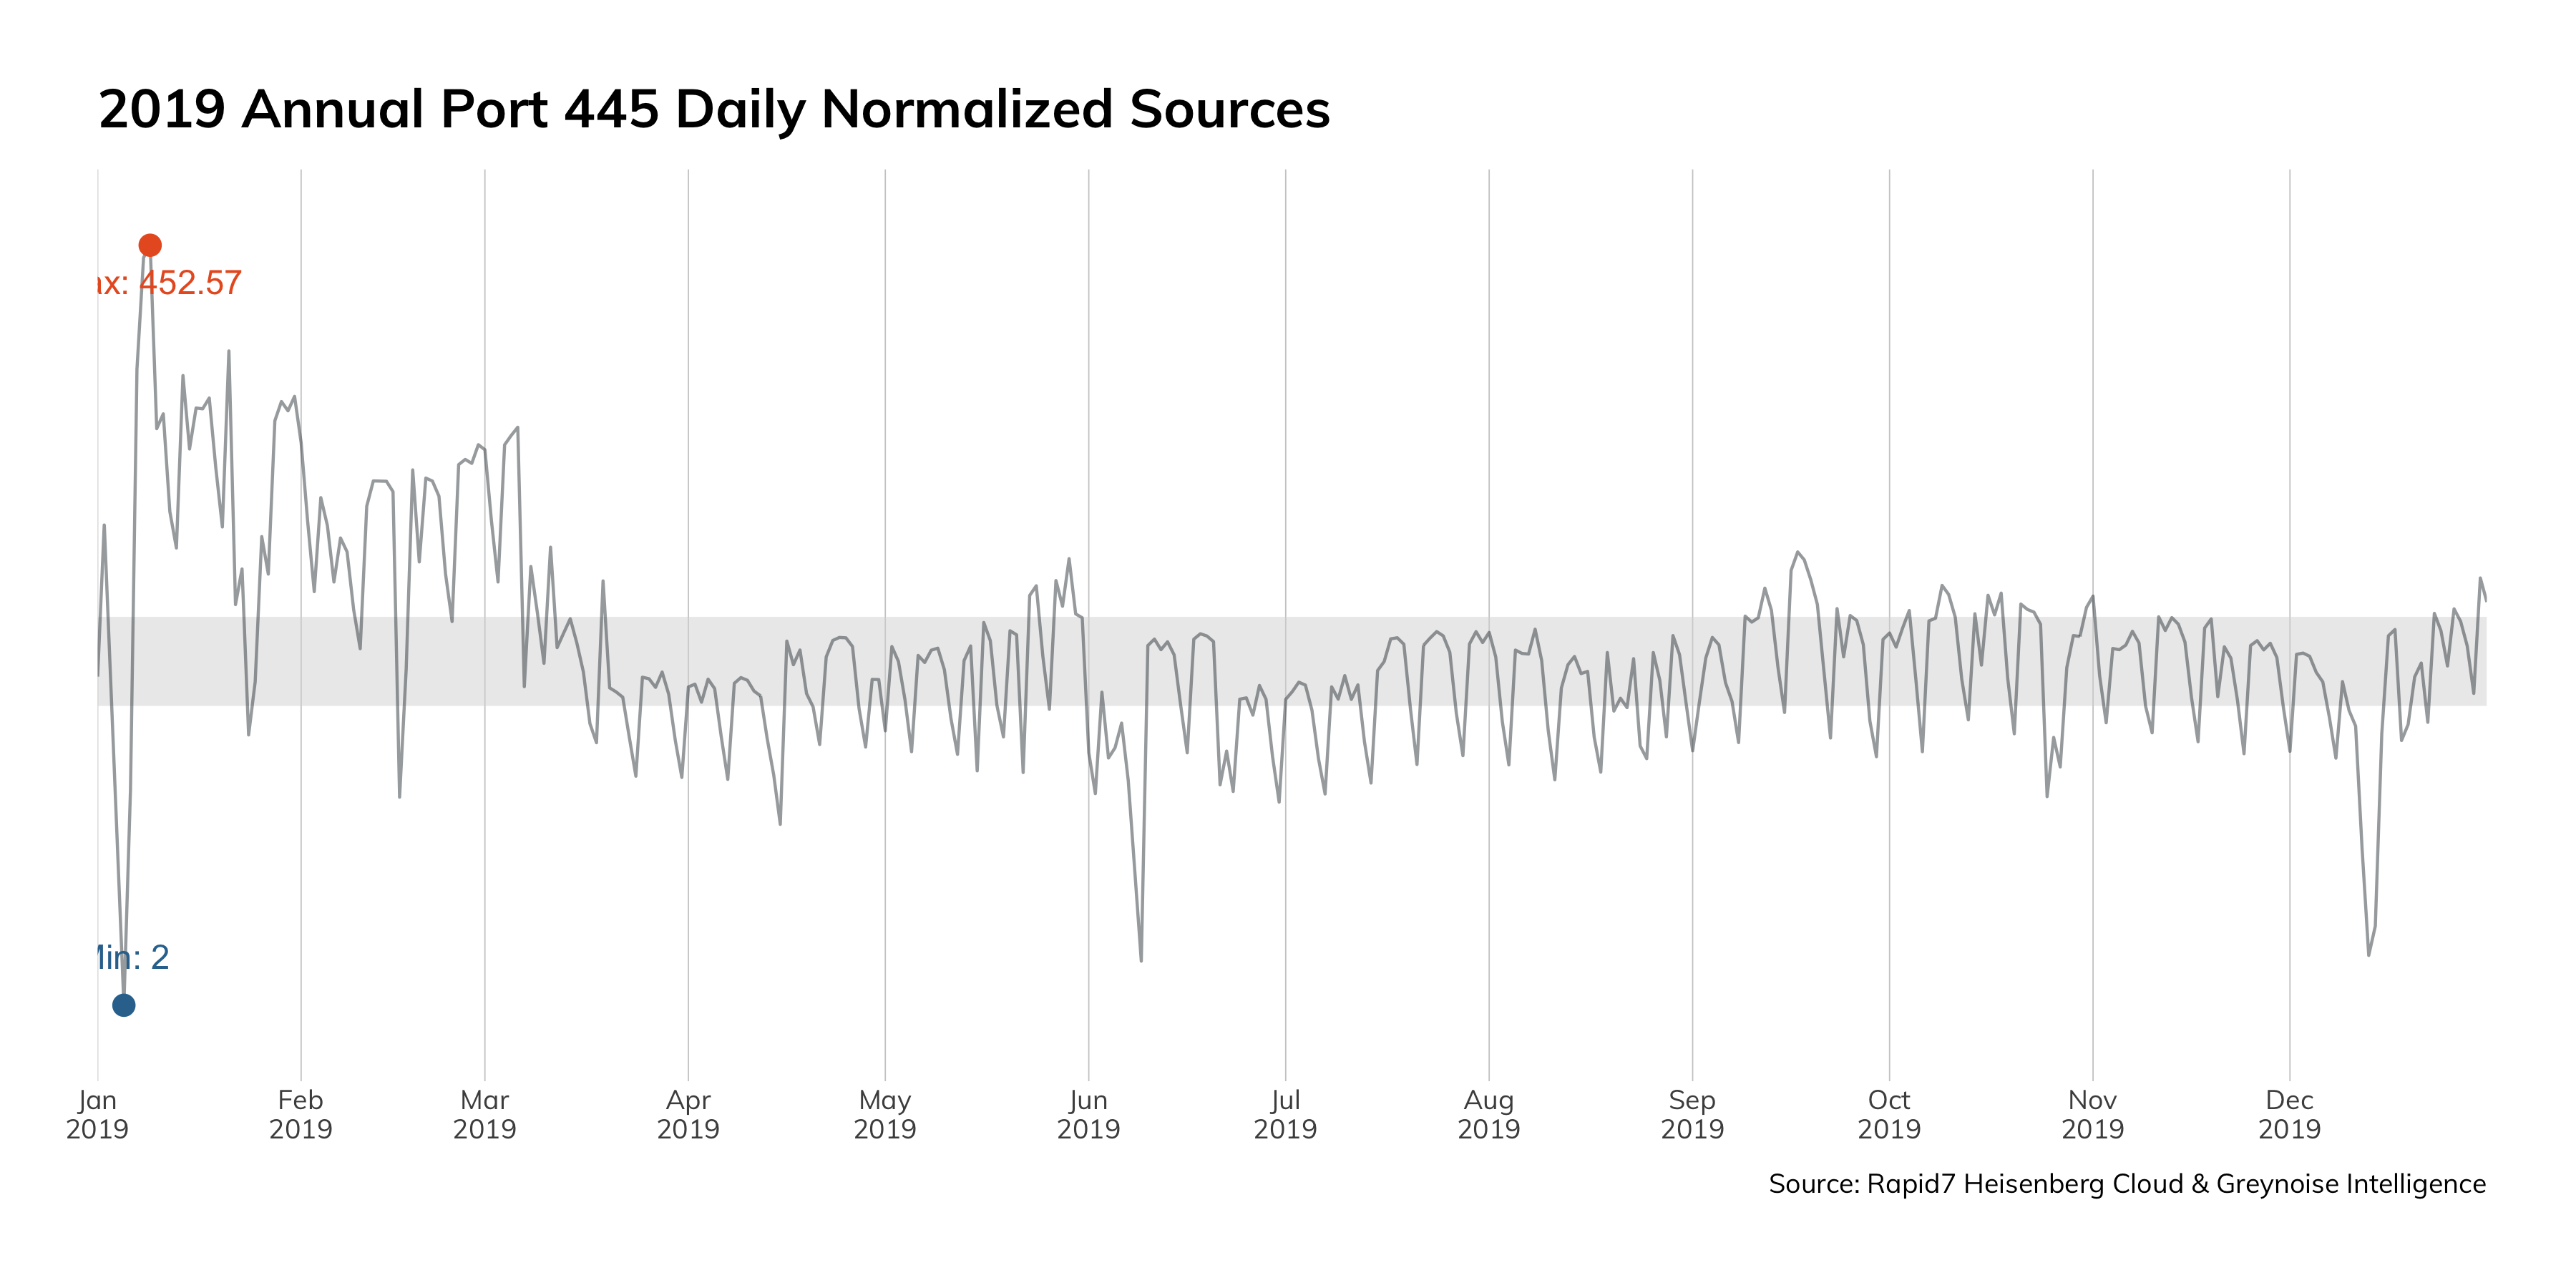 Figure 4: 2019 Annual Port 445 Daily Normalized Sources